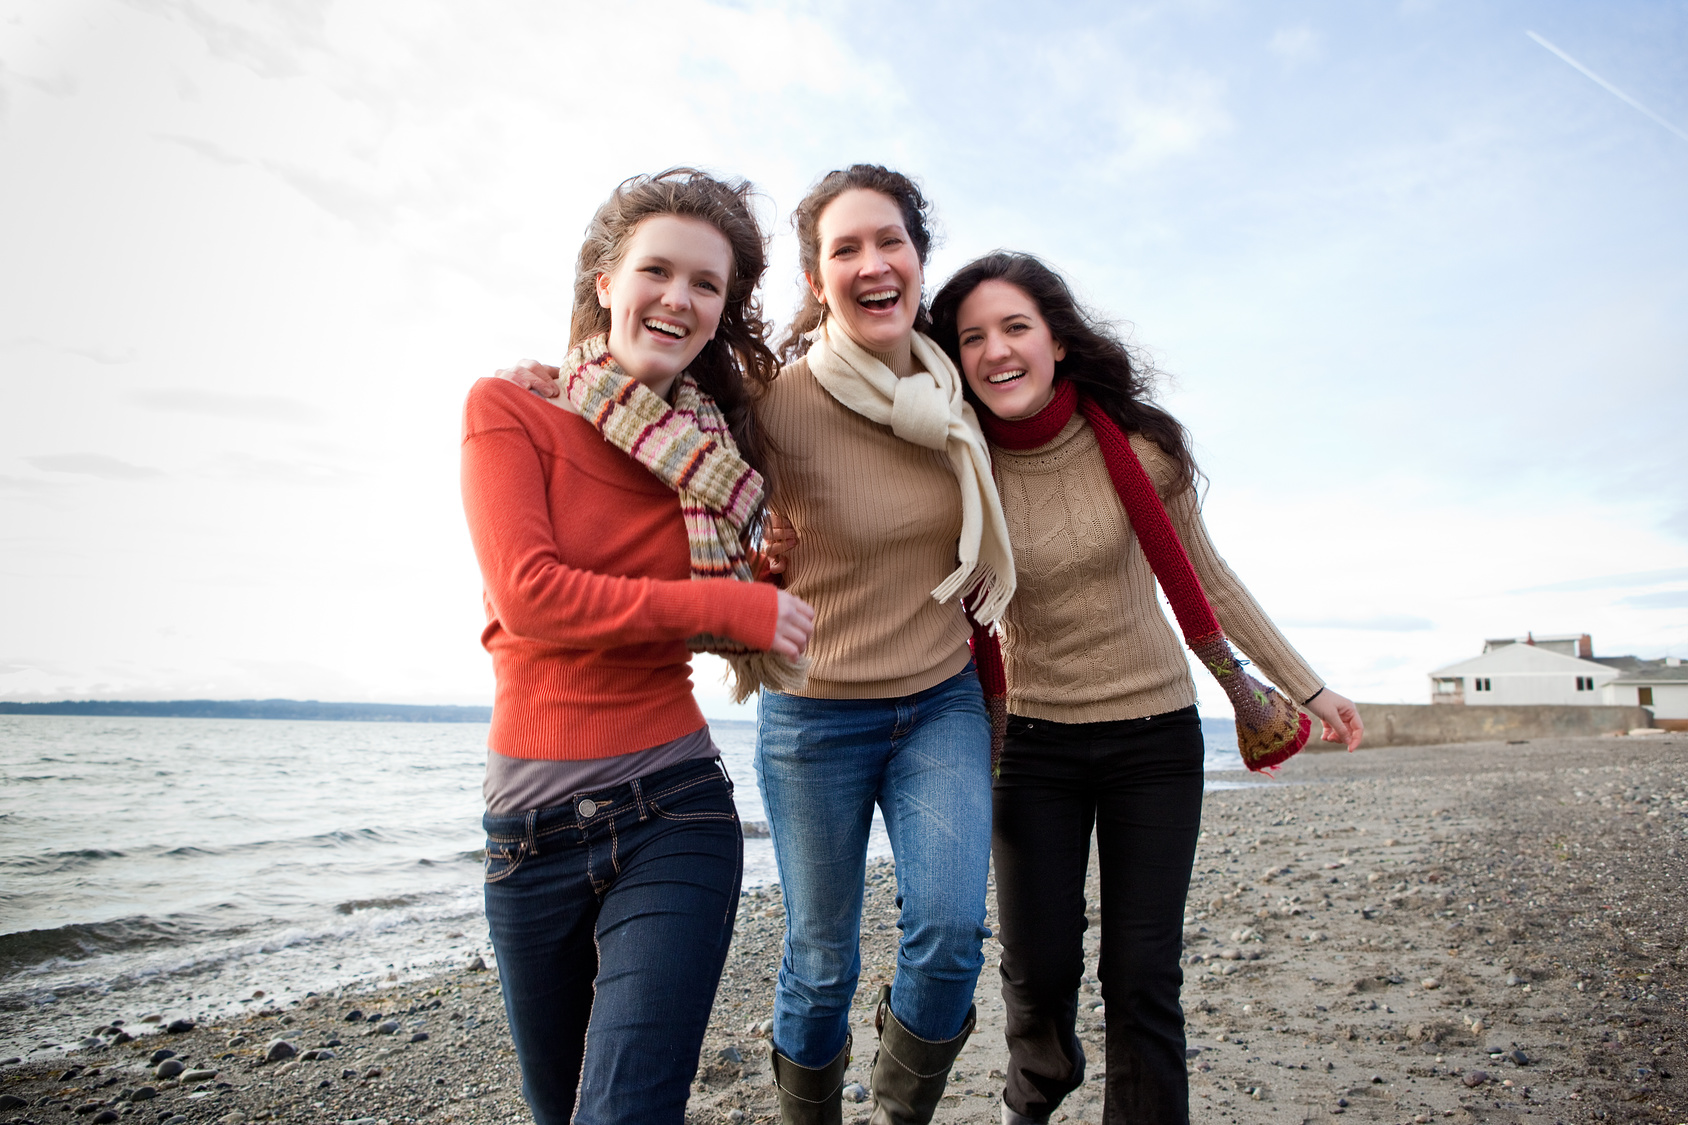 [Translate to German_CH:] Drei Frauen stehen am Strand